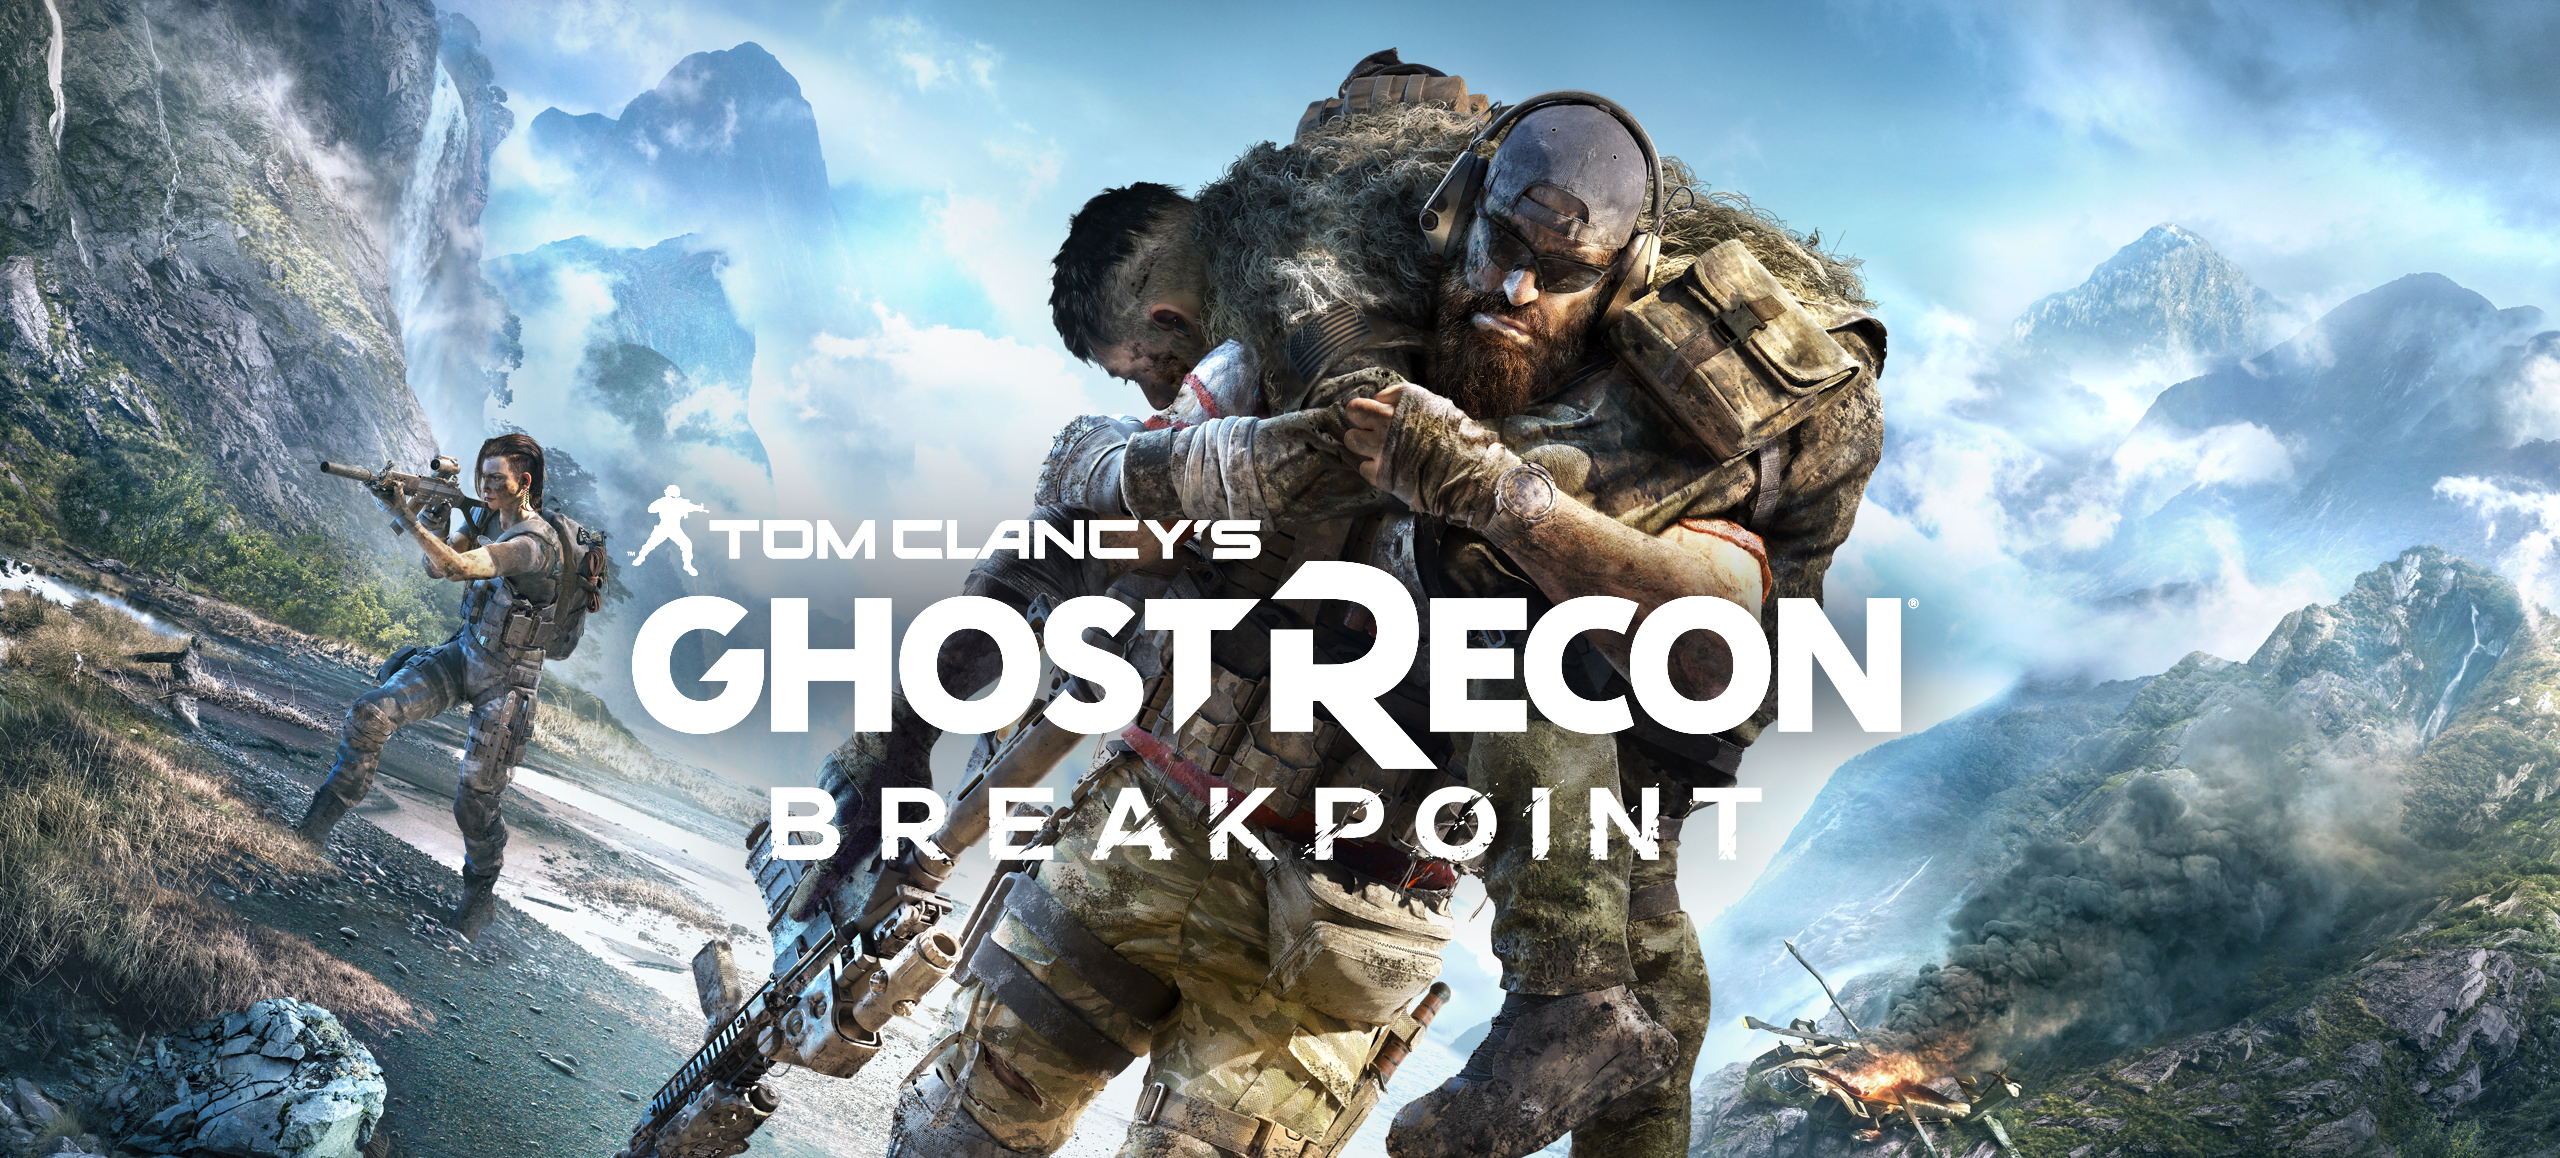 「Ghost Recon: Breakpoint」的圖片搜尋結果